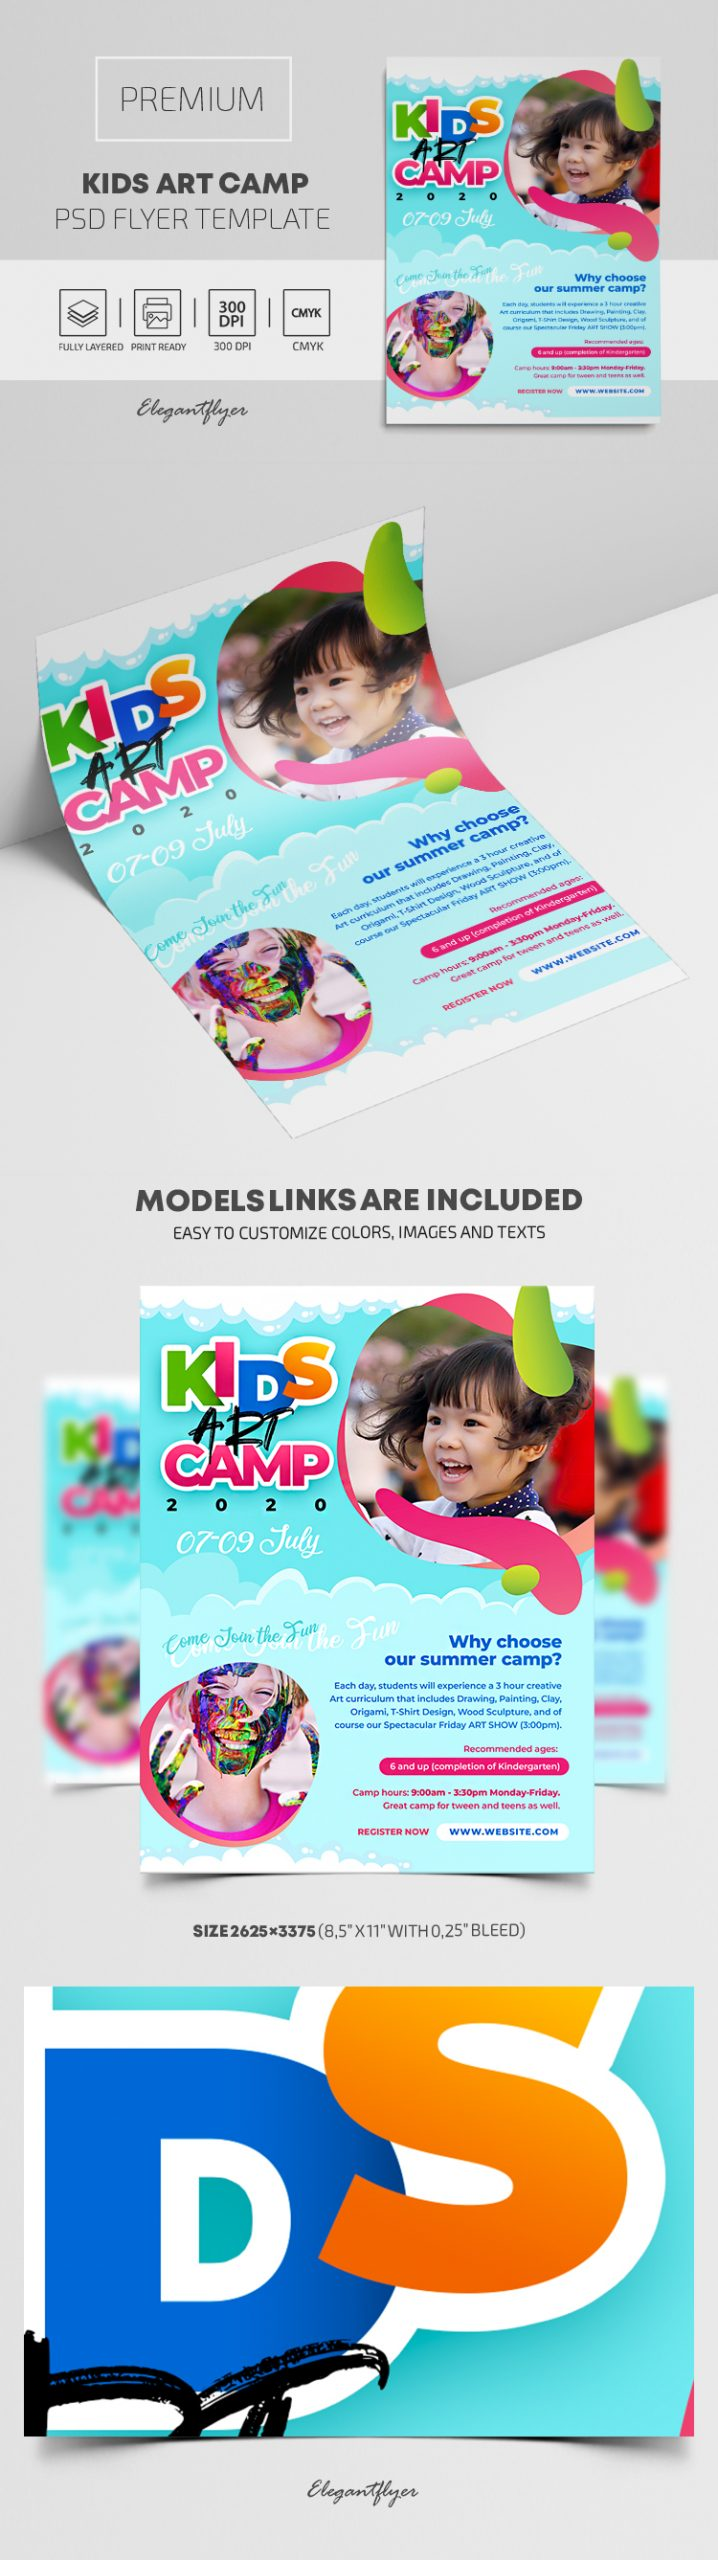 Kids Art Camp – Premium PSD Flyer Template